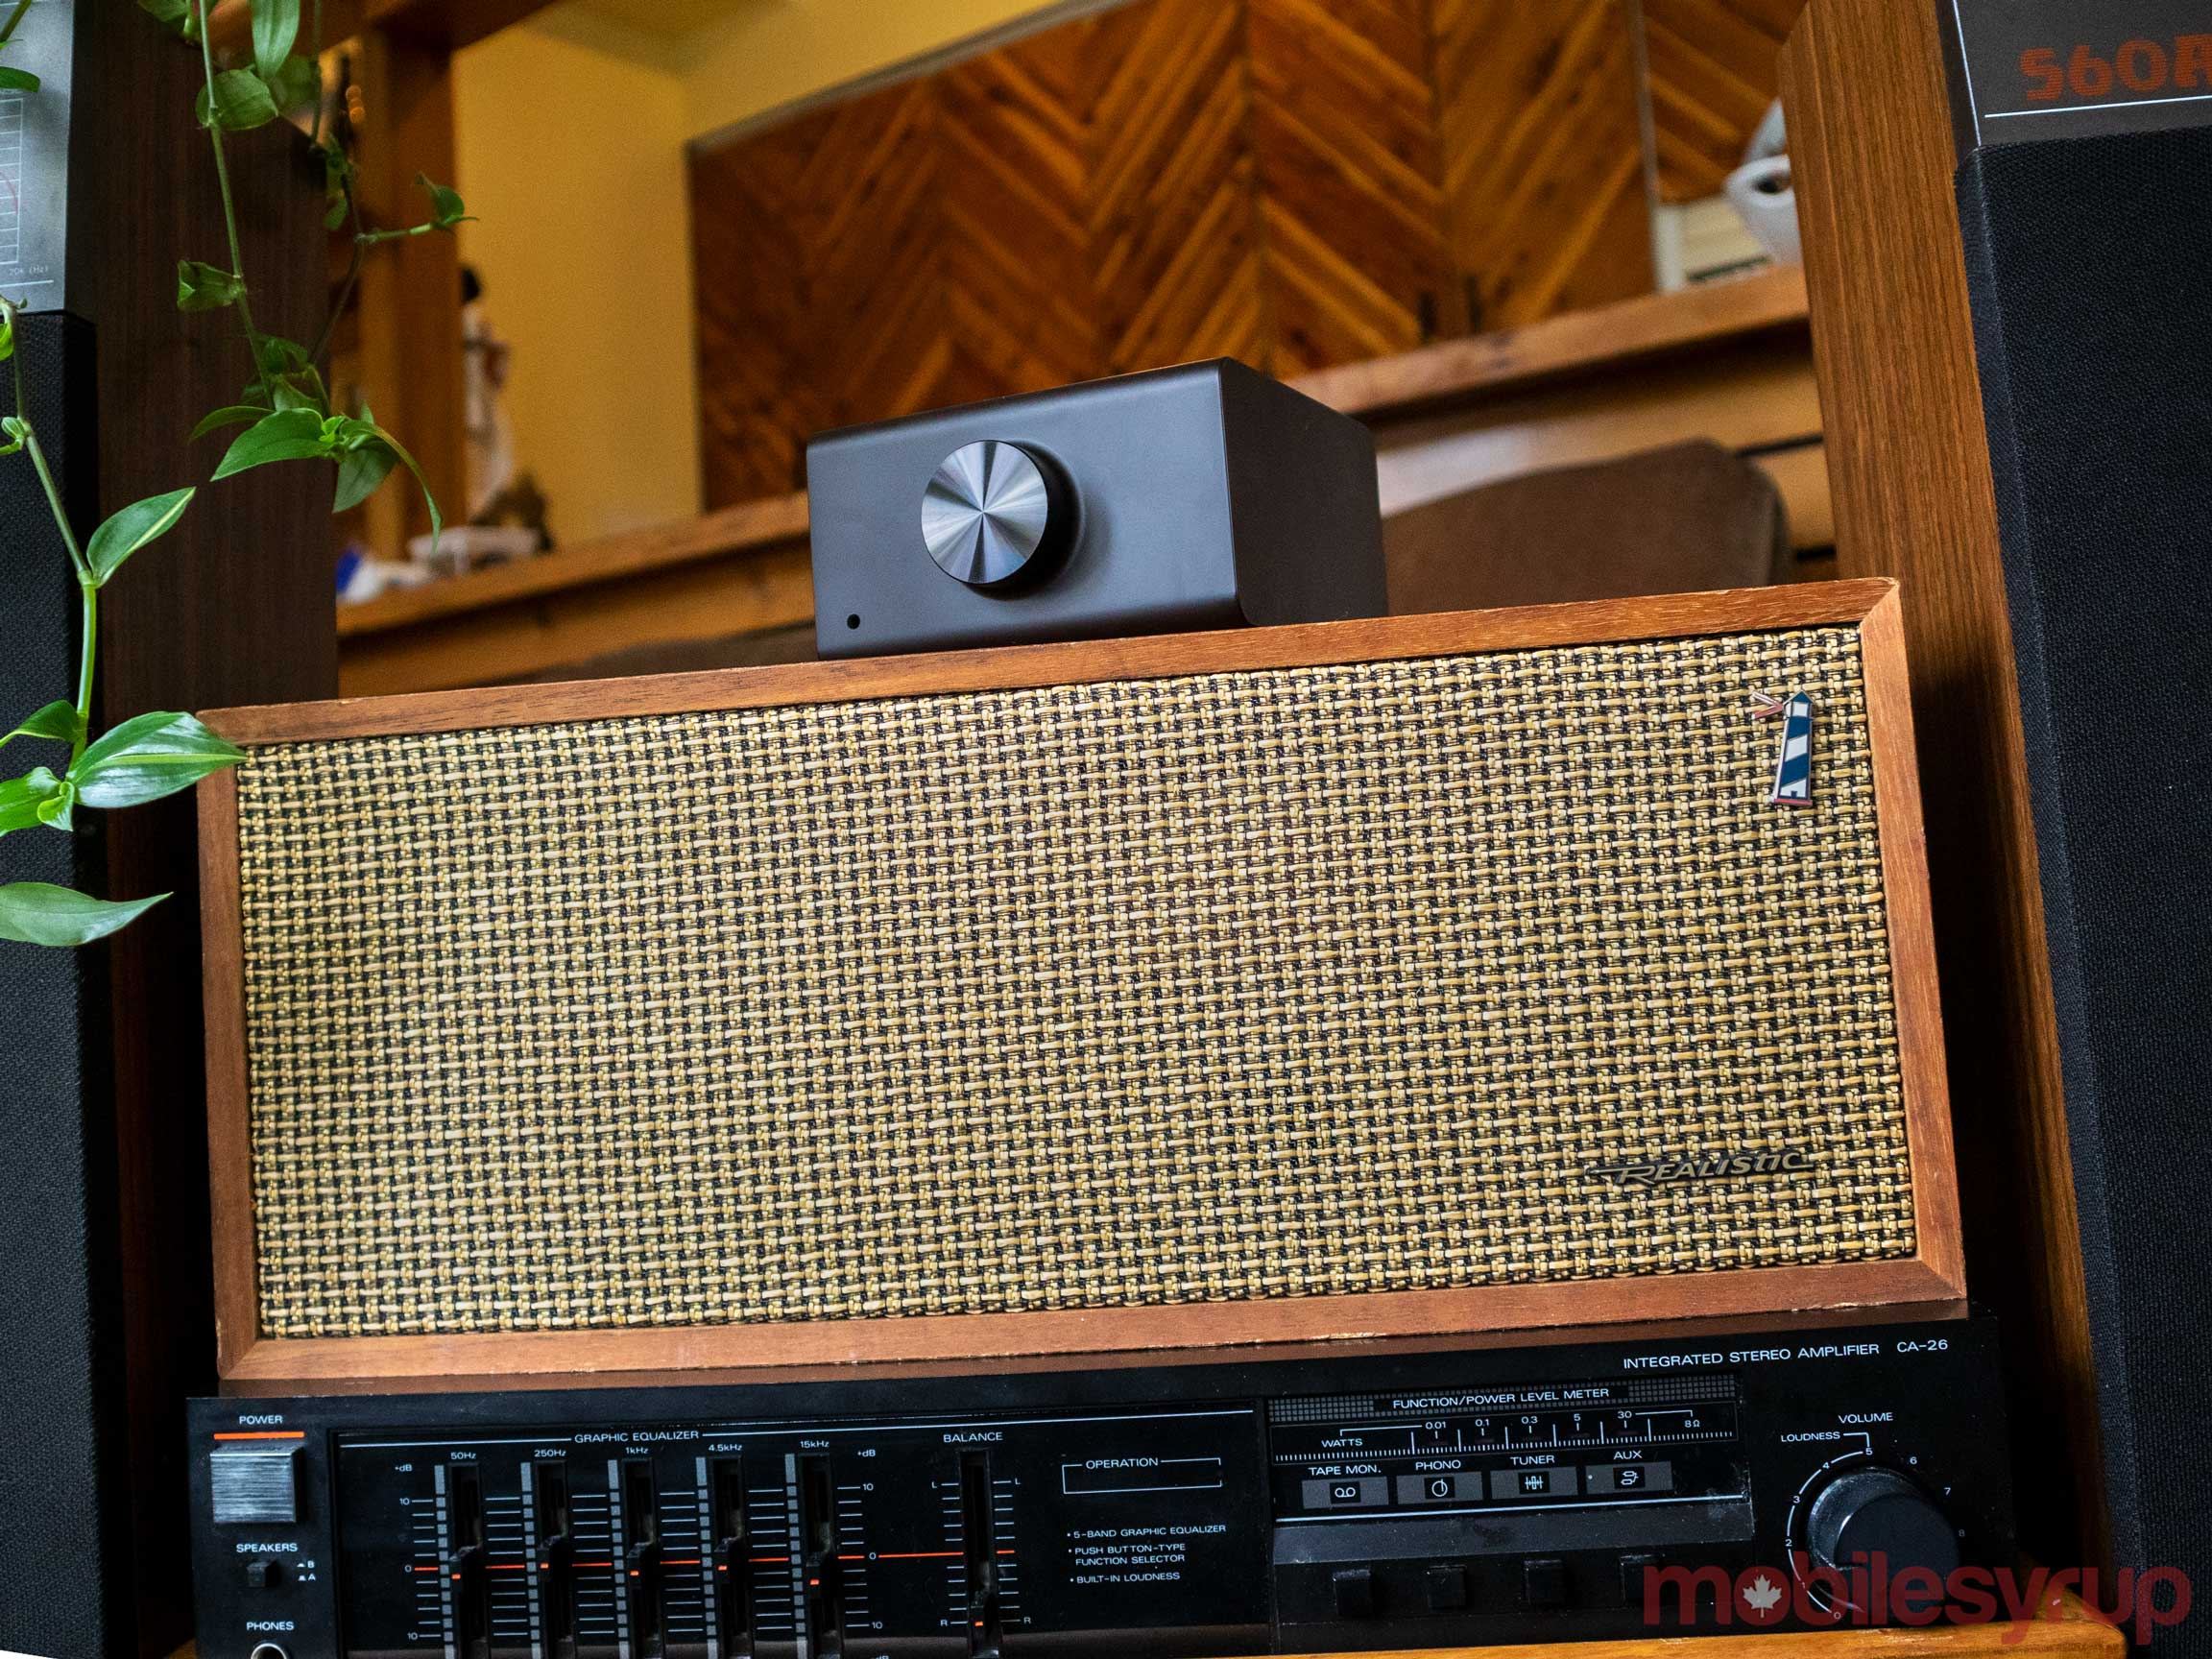 Amazon's Echo Link and Echo Link Amp: Which device is right